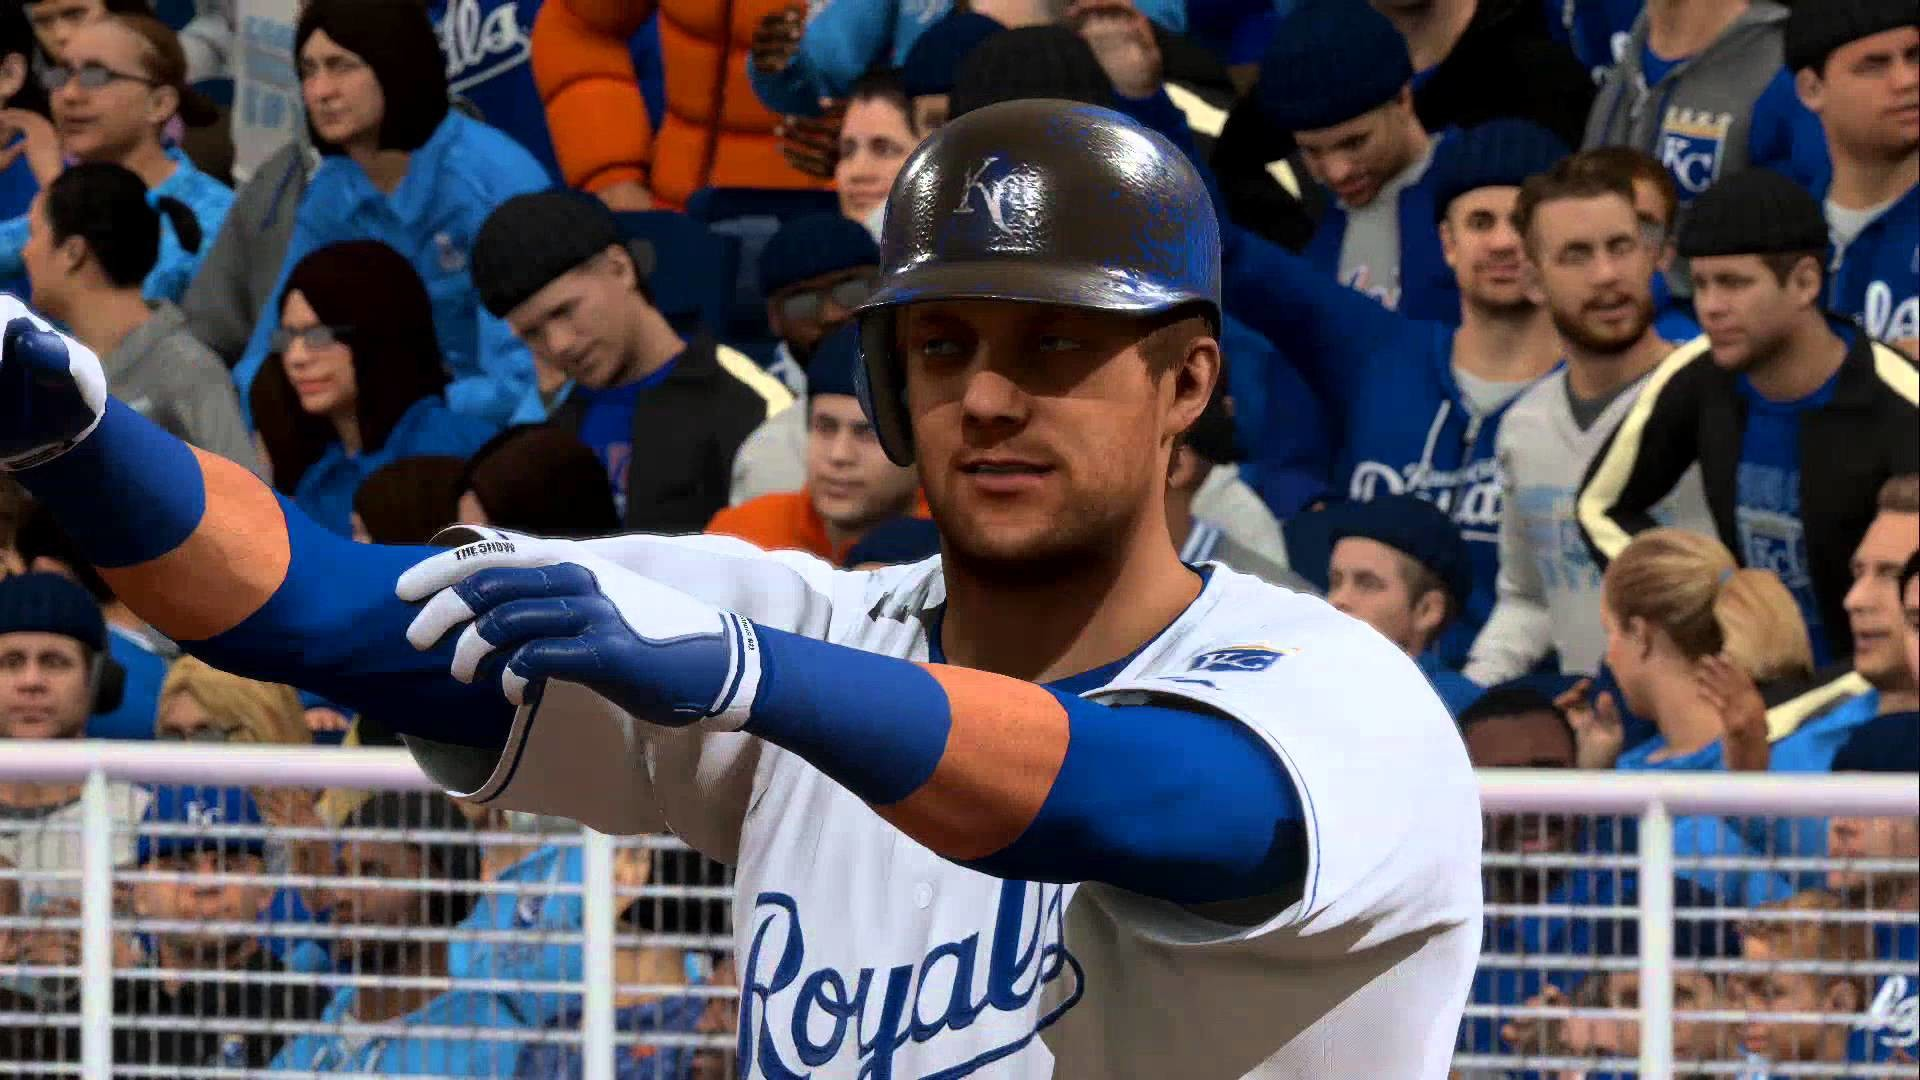 1920x1080 New York Mets vs Kansas city Royals - Opening Day World Series Rematch -  MLB The Show 16